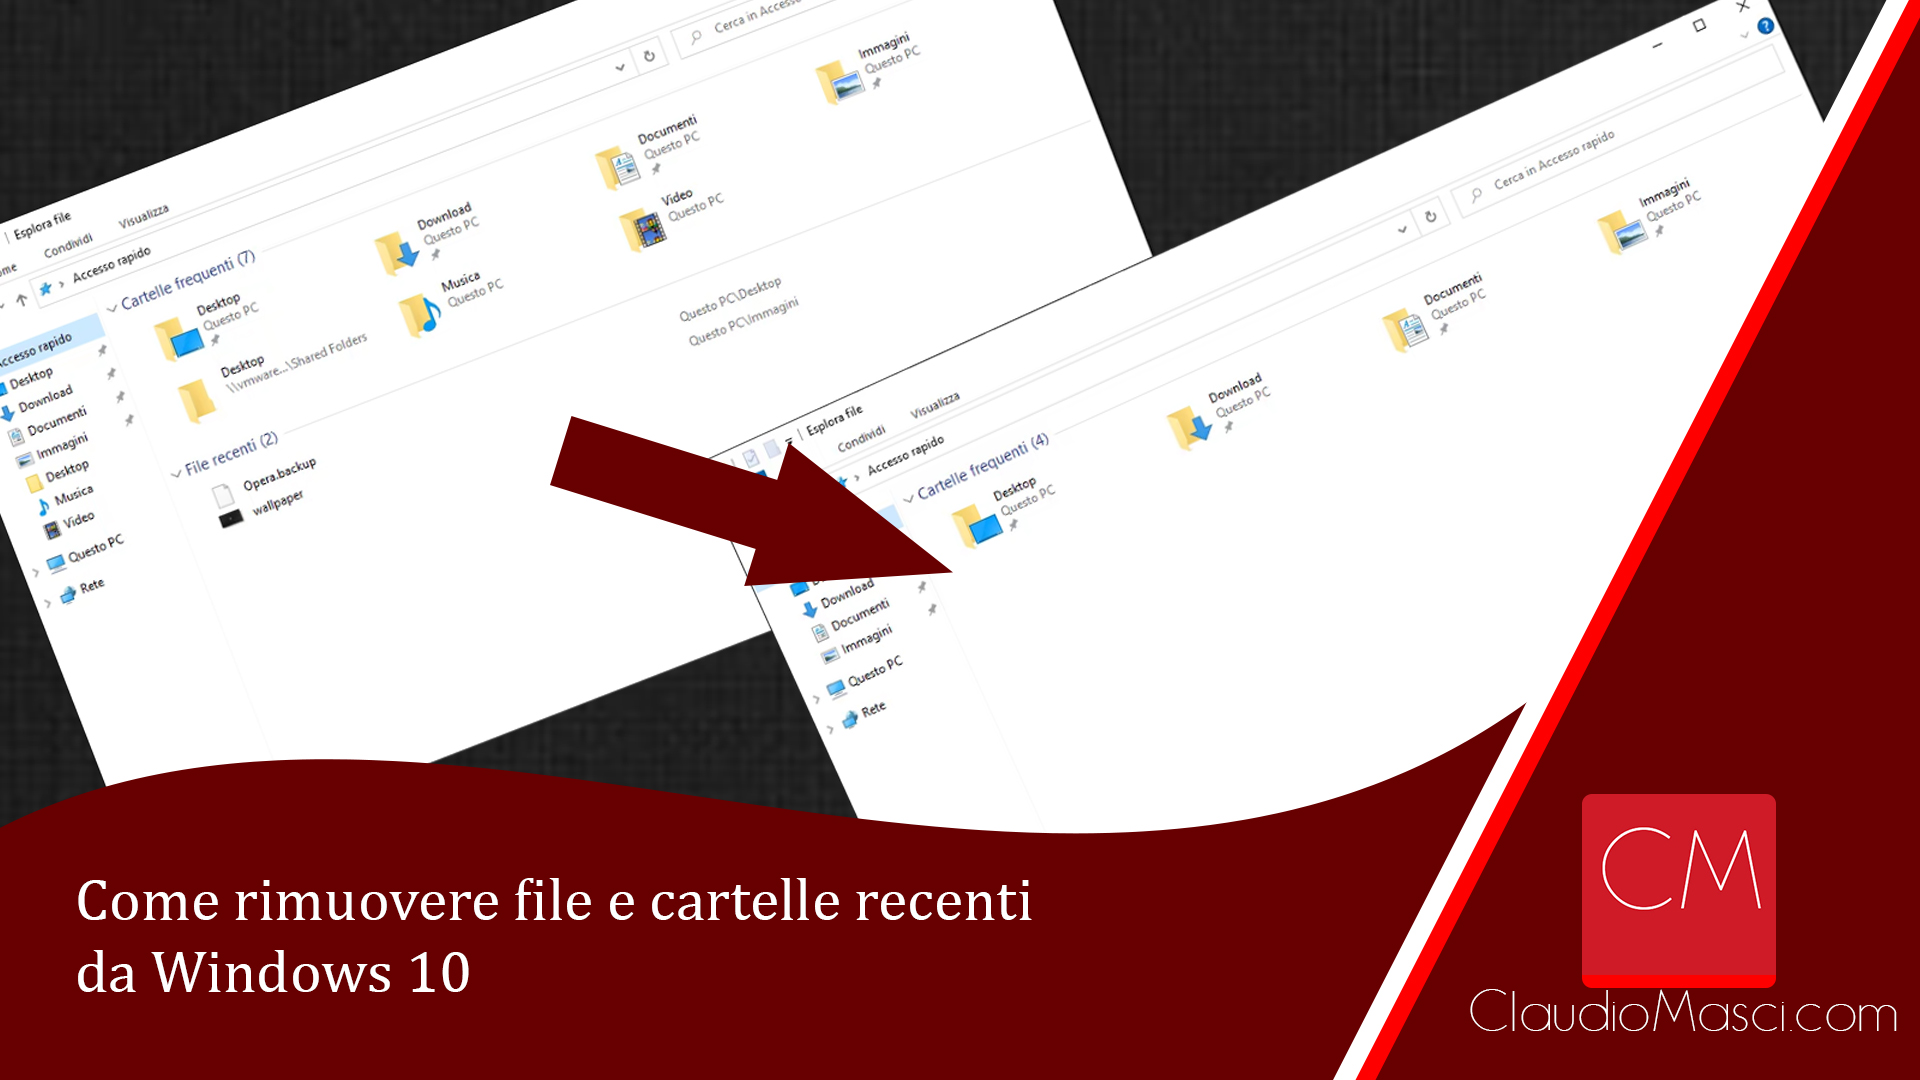 Come rimuovere file e cartelle recenti da Windows 10